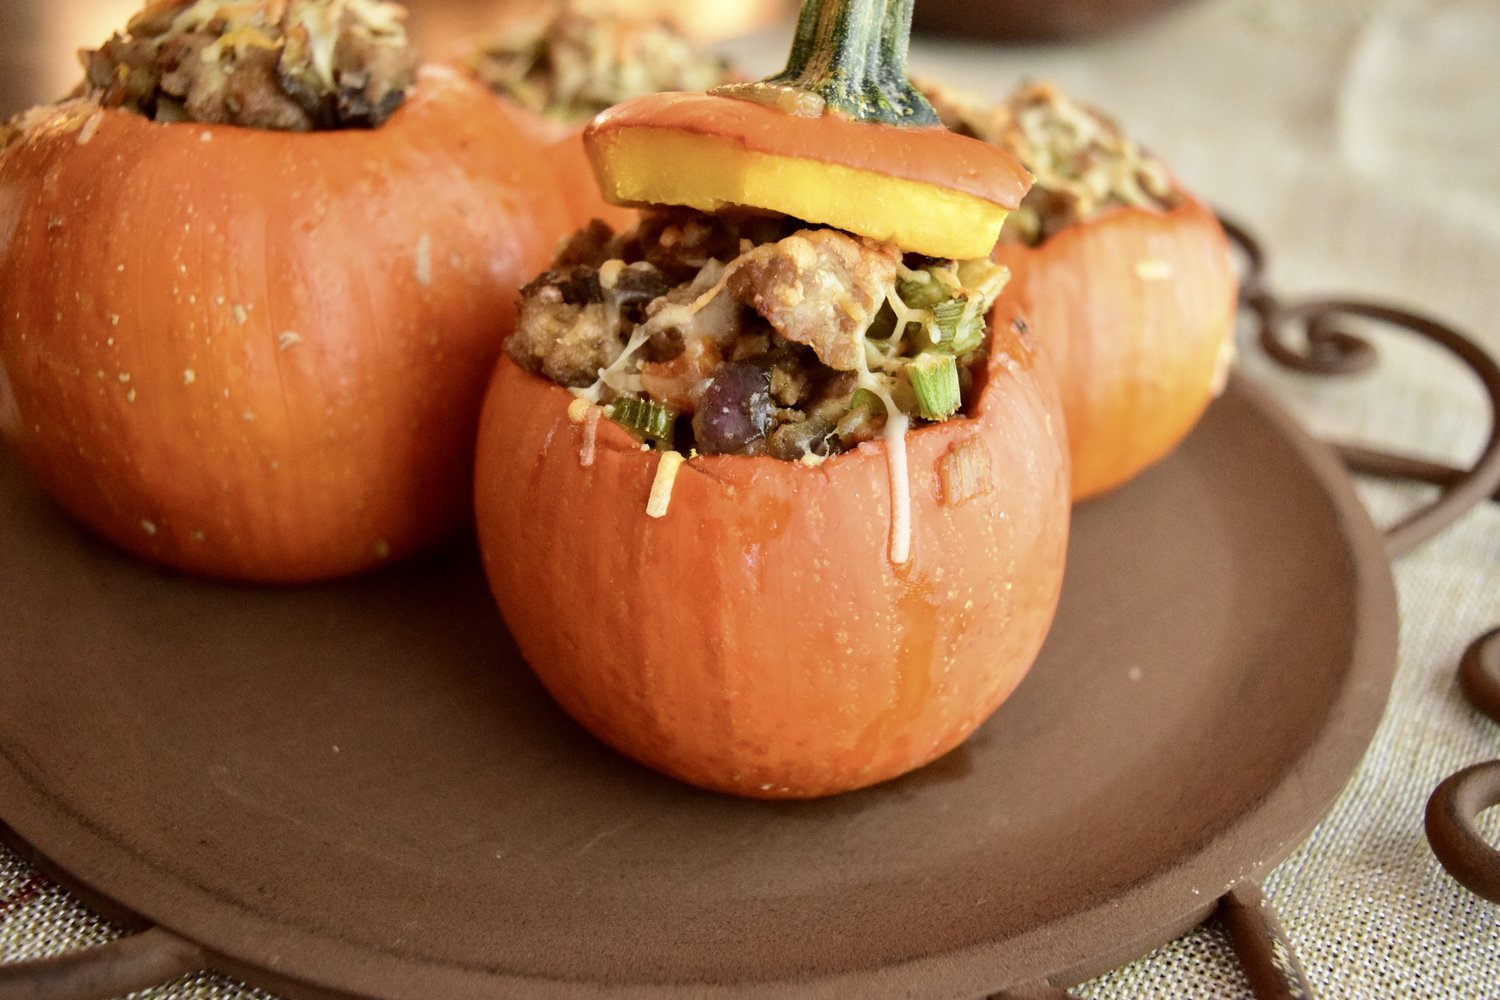 Savory Stuffed Pumpkins